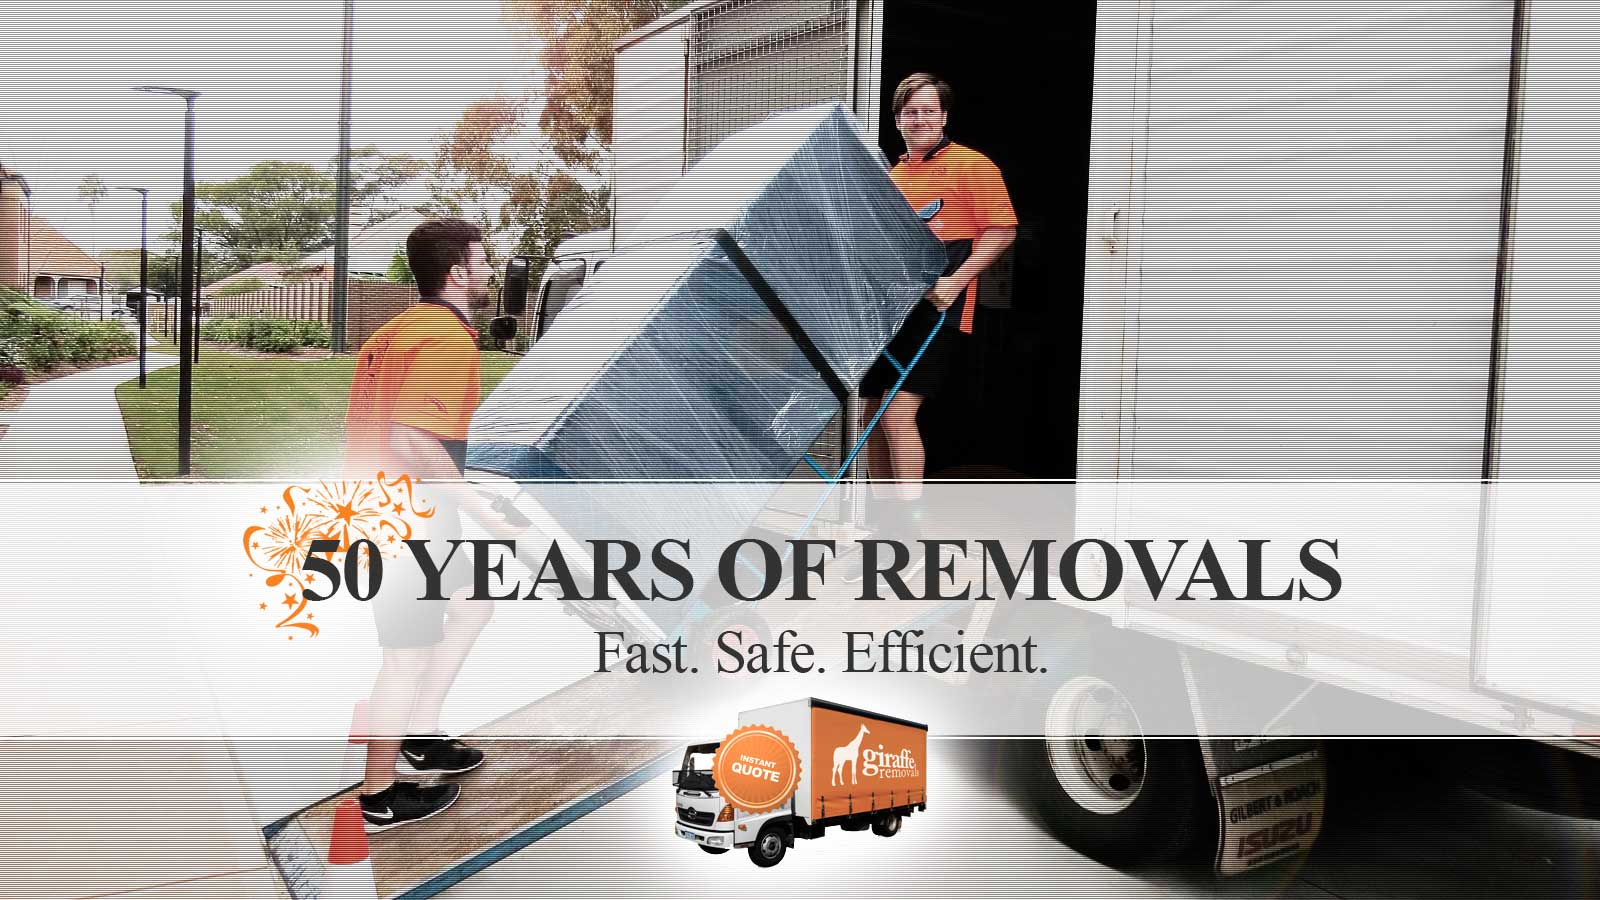 Removalists Sydney - Giraffe Removals